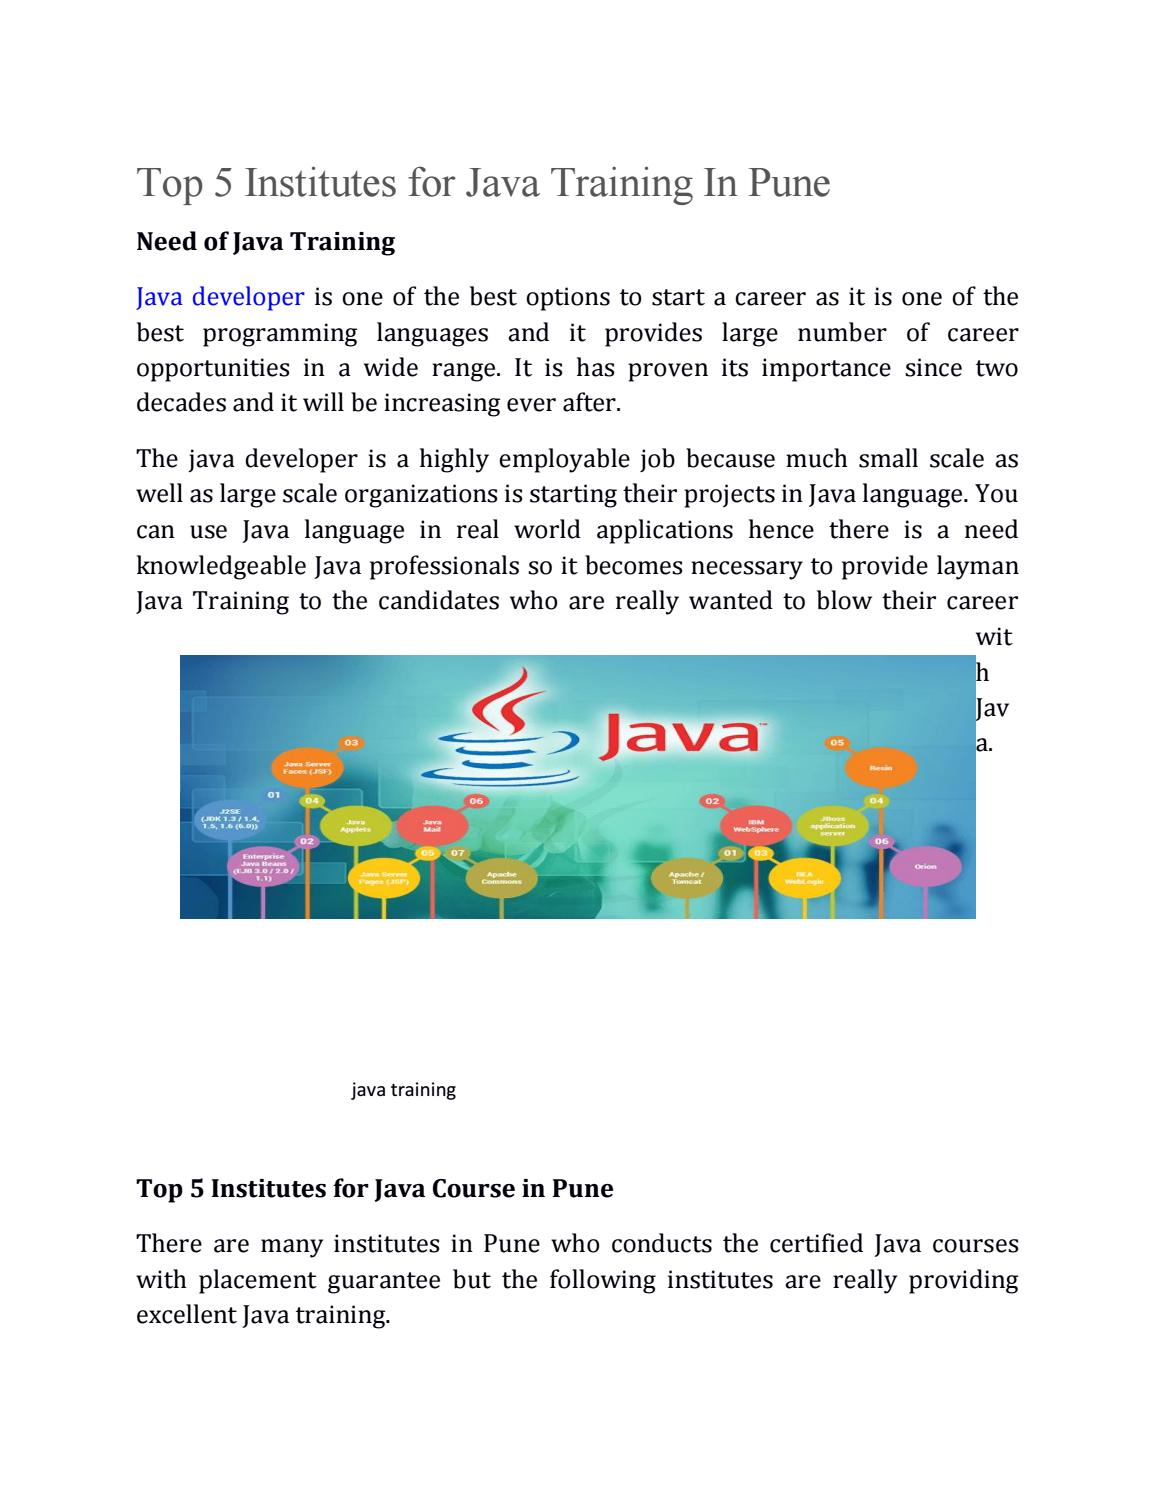 Top 5 Institutes for Java Training In Pune by